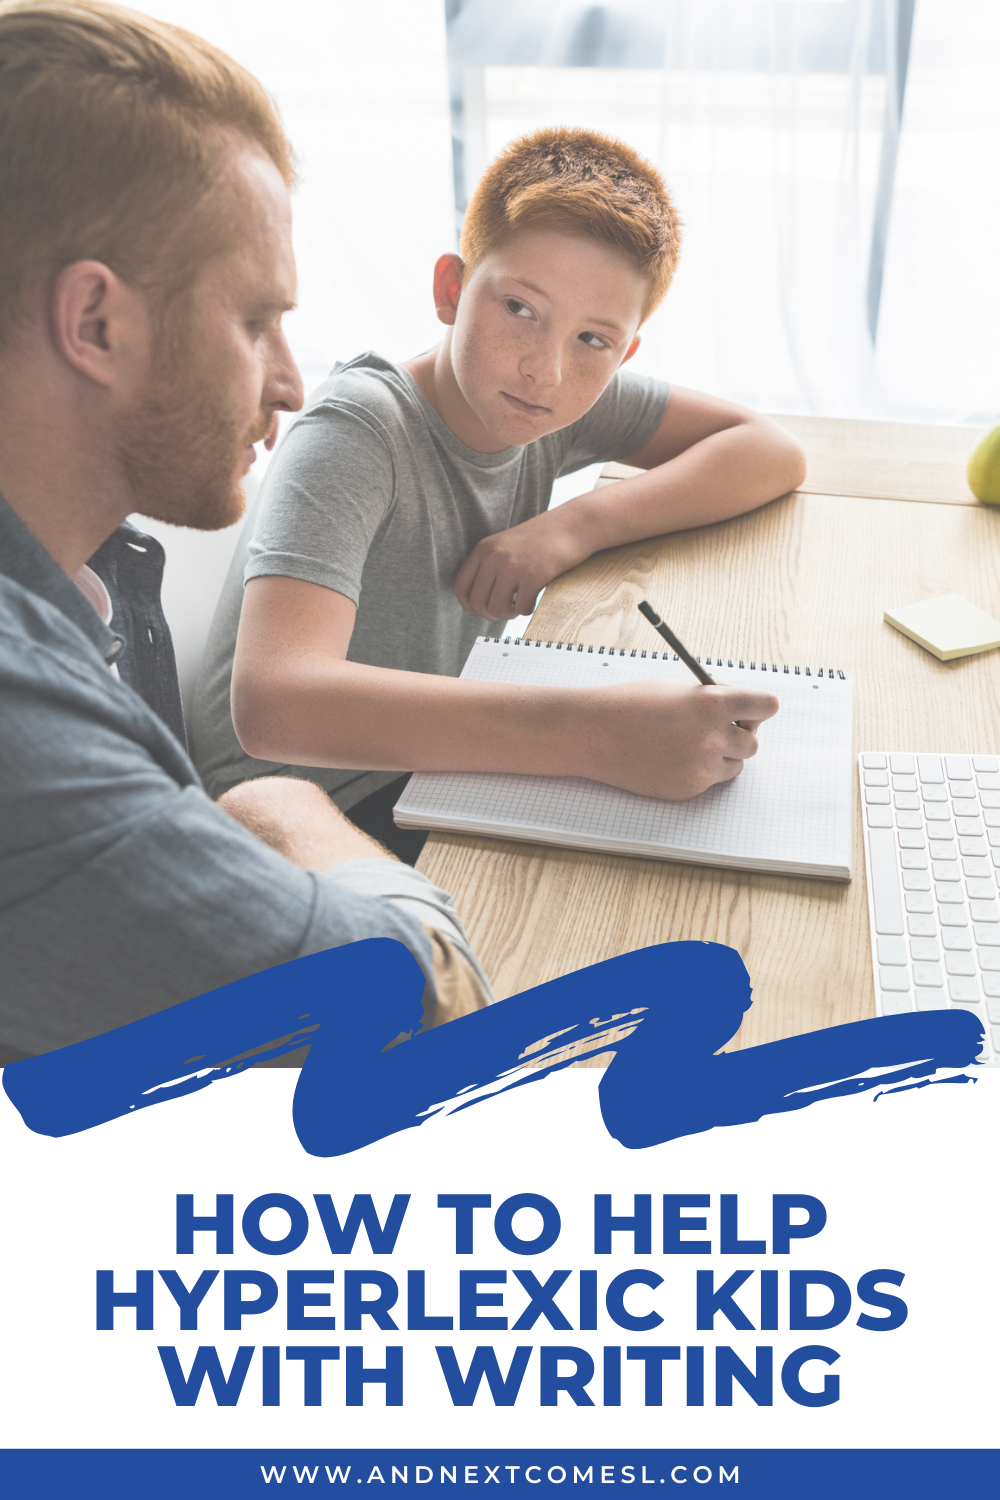 Tips and strategies for how to help hyperlexic kids with writing assignments